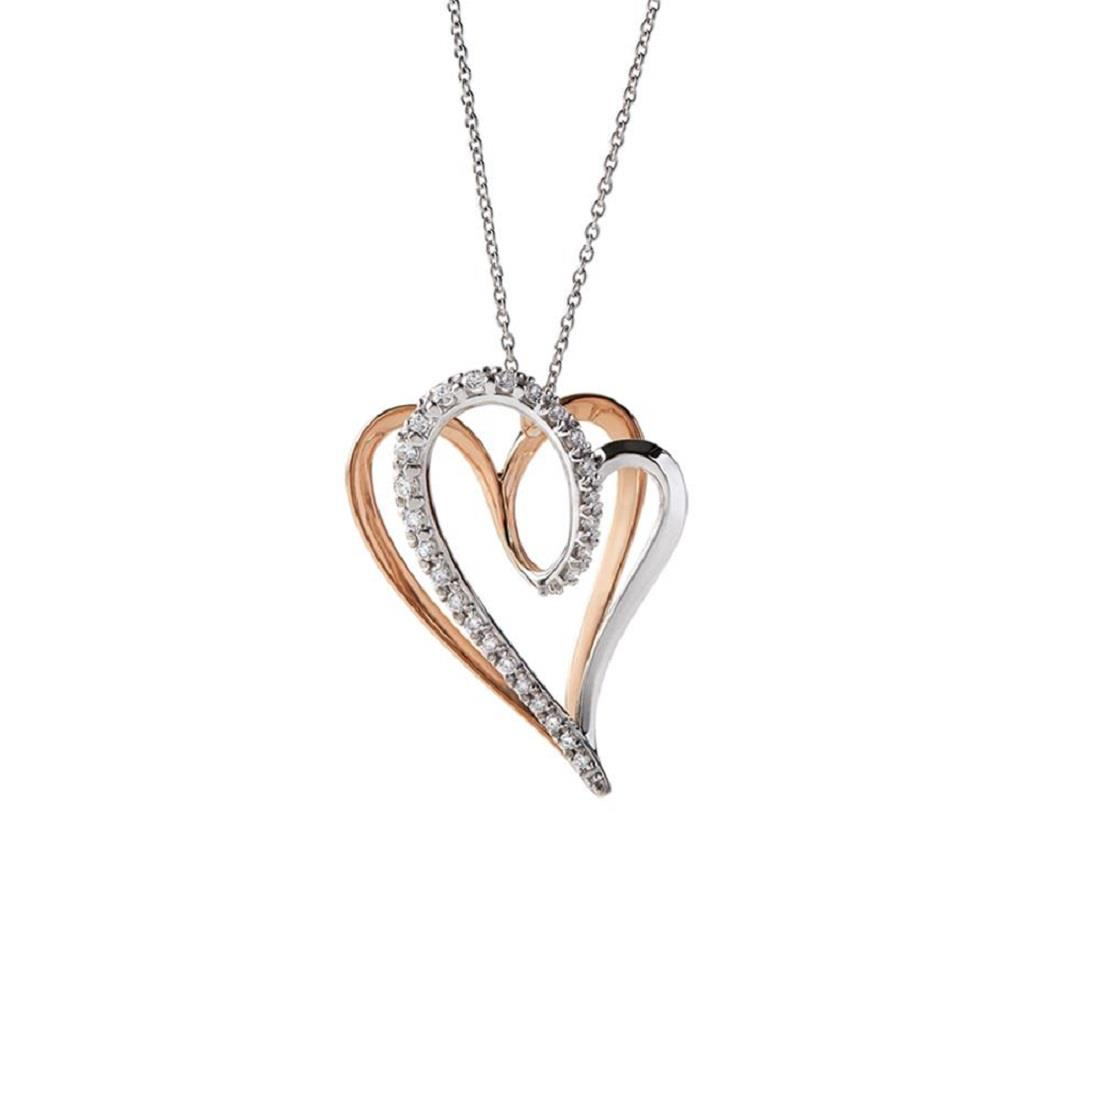 Big size heart pendant in 18 kt white and rose gold with 0,35 ct diamonds 